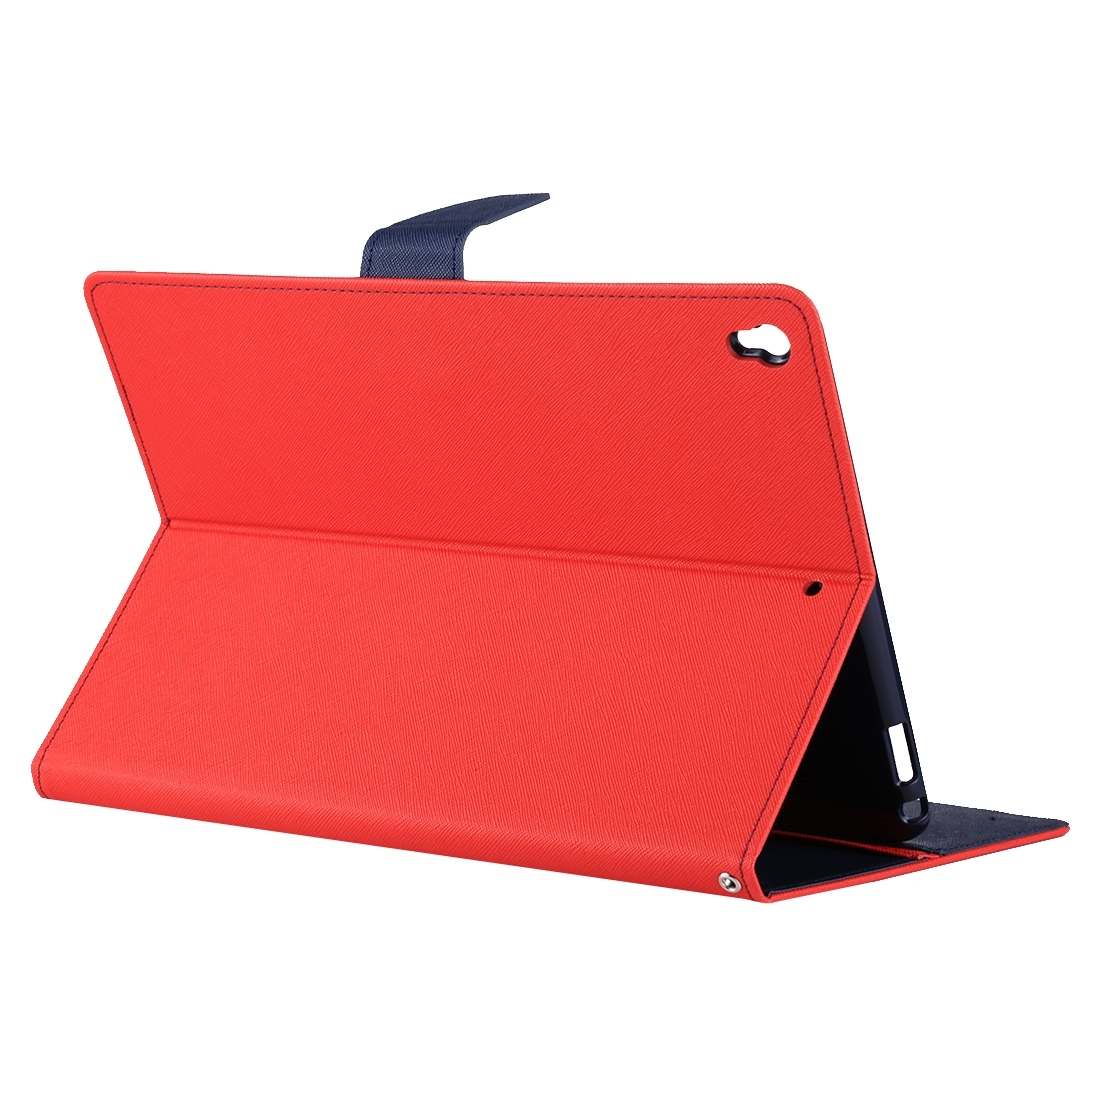 iPad Air 3 Case (10.5 Inch) Anti-slip Leather Protector Case (Red)